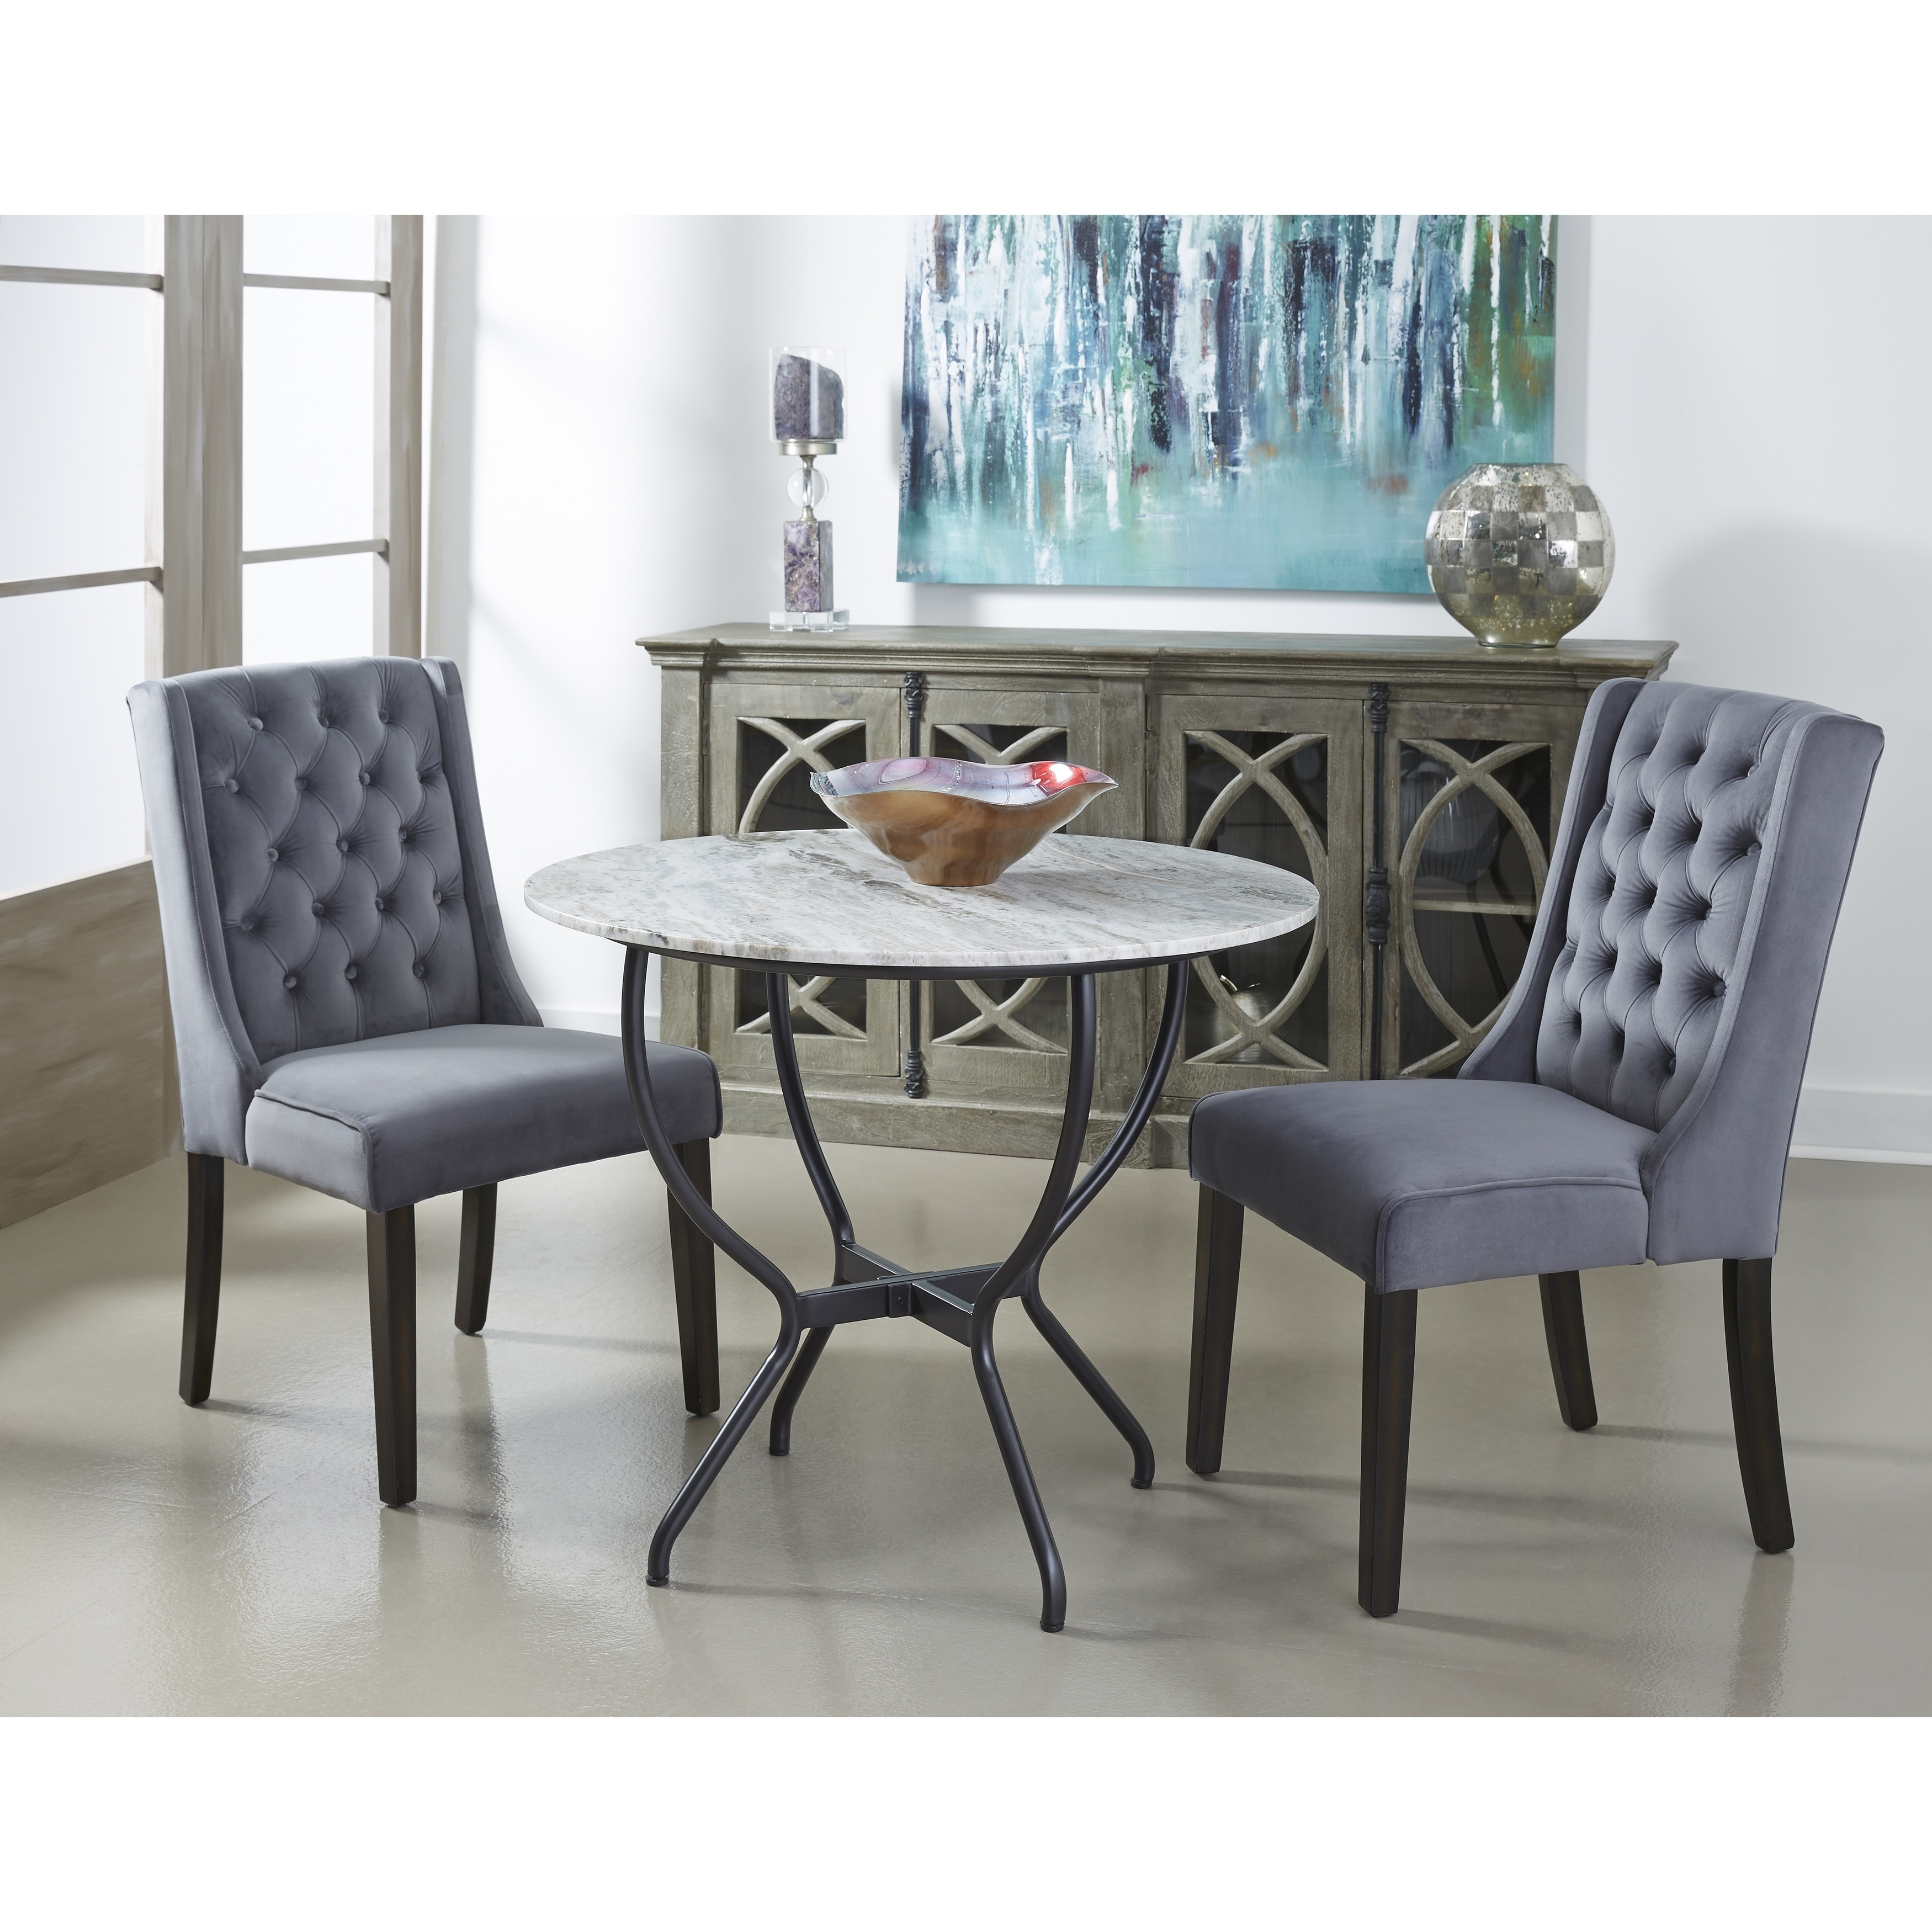 Shop Somette Madeline White Marble Top Black Metal Base Round Dining